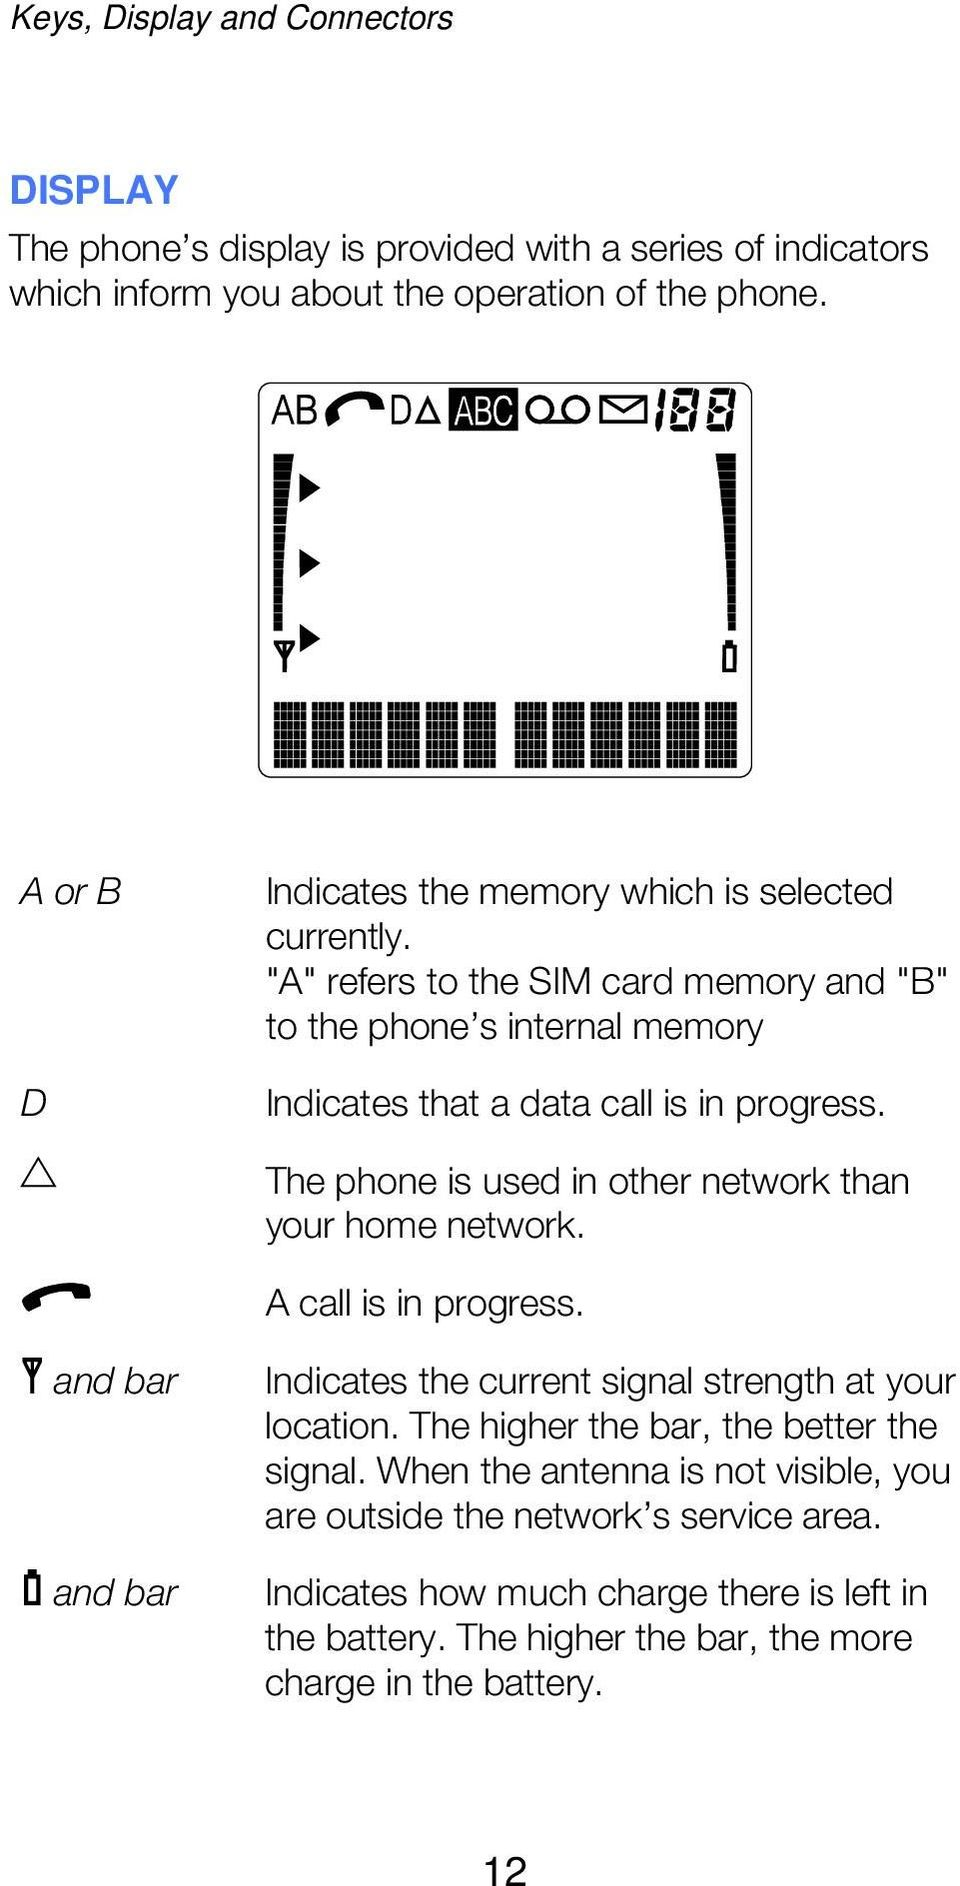 The phone is used in other network than your home network. A call is in progress. and bar and bar Indicates the current signal strength at your location. The higher the bar, the better the signal.